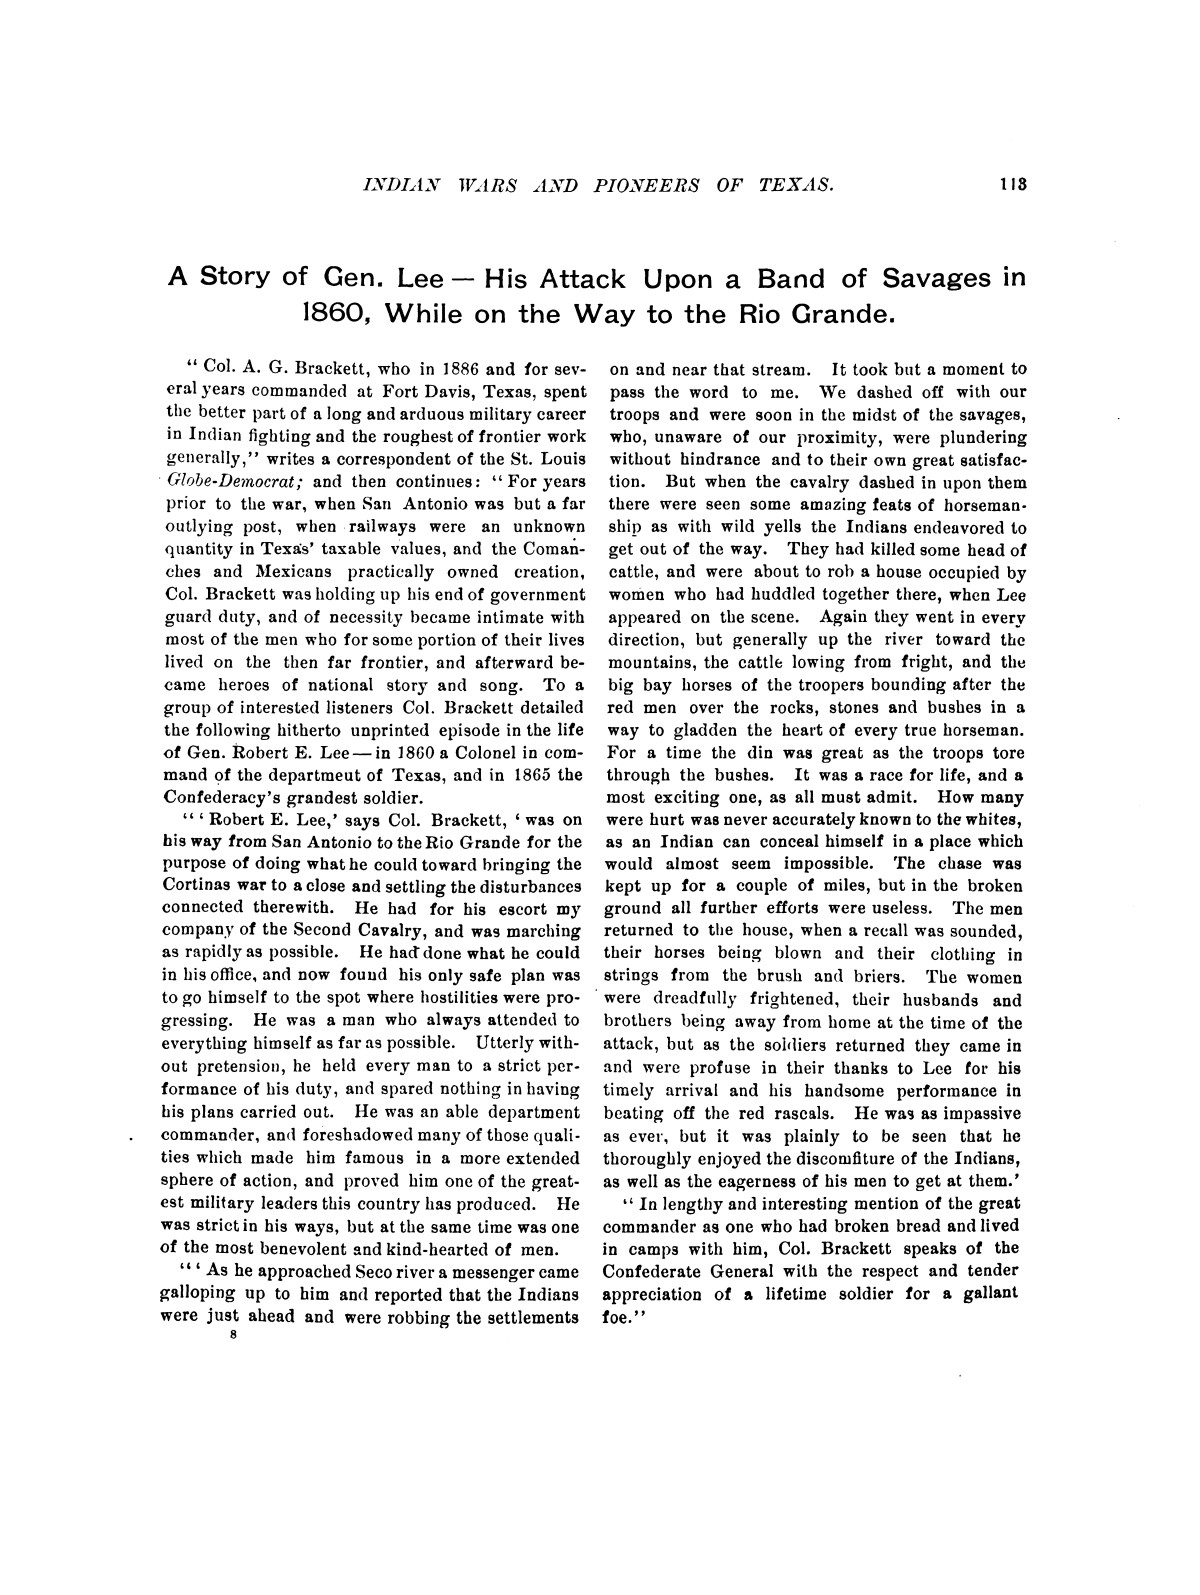 Indian wars and pioneers of Texas / by John Henry Brown.                                                                                                      [Sequence #]: 125 of 894